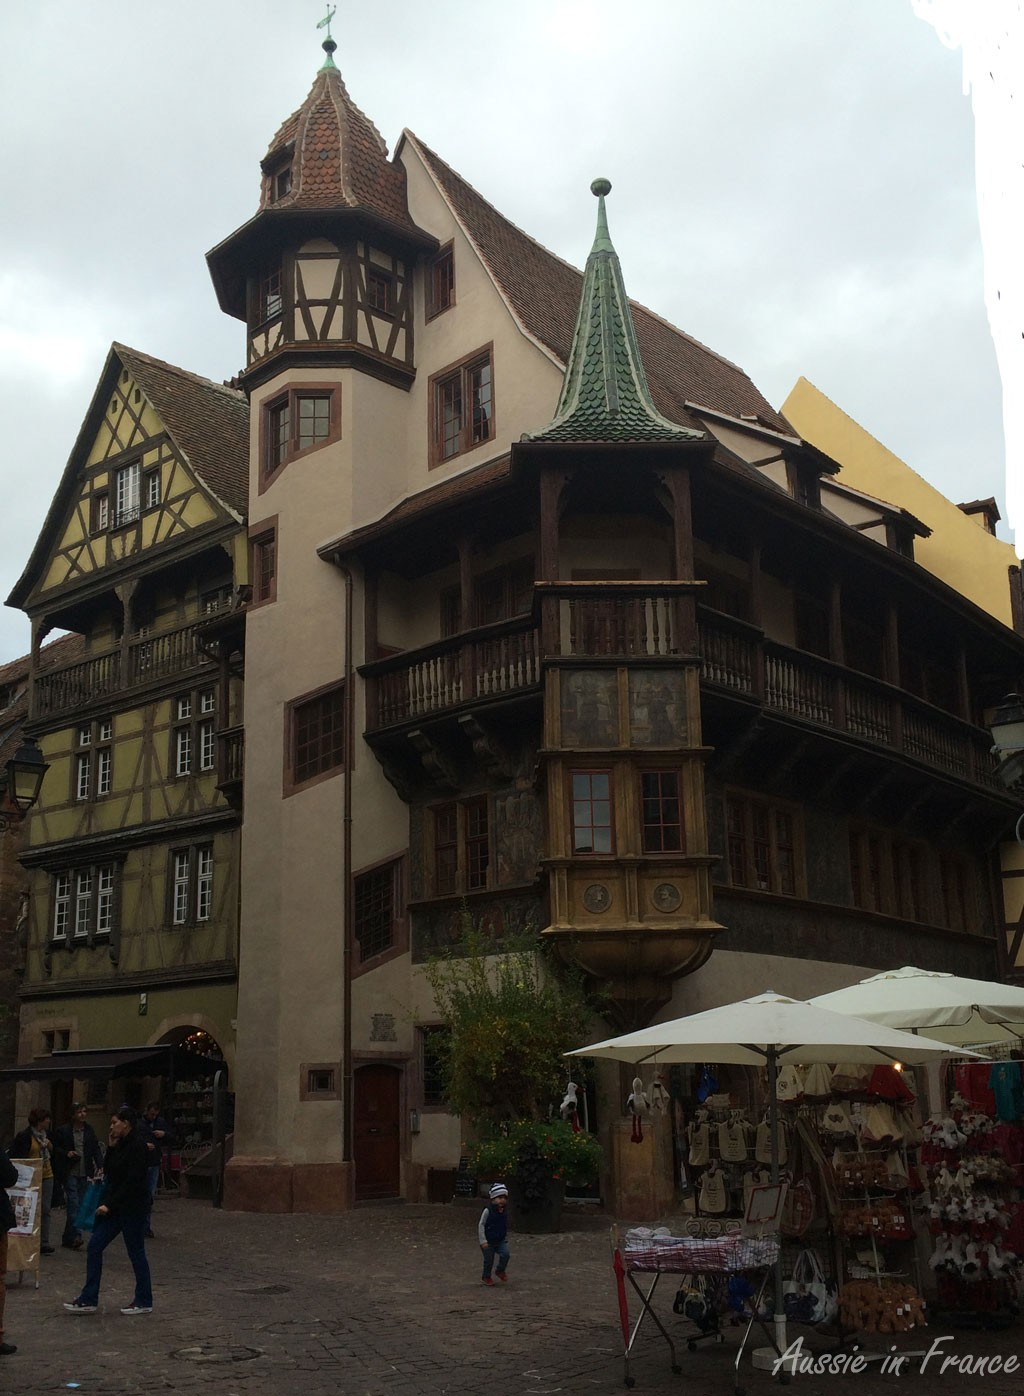 Pfister House built in 1537, probably the best-known monument in Colmar